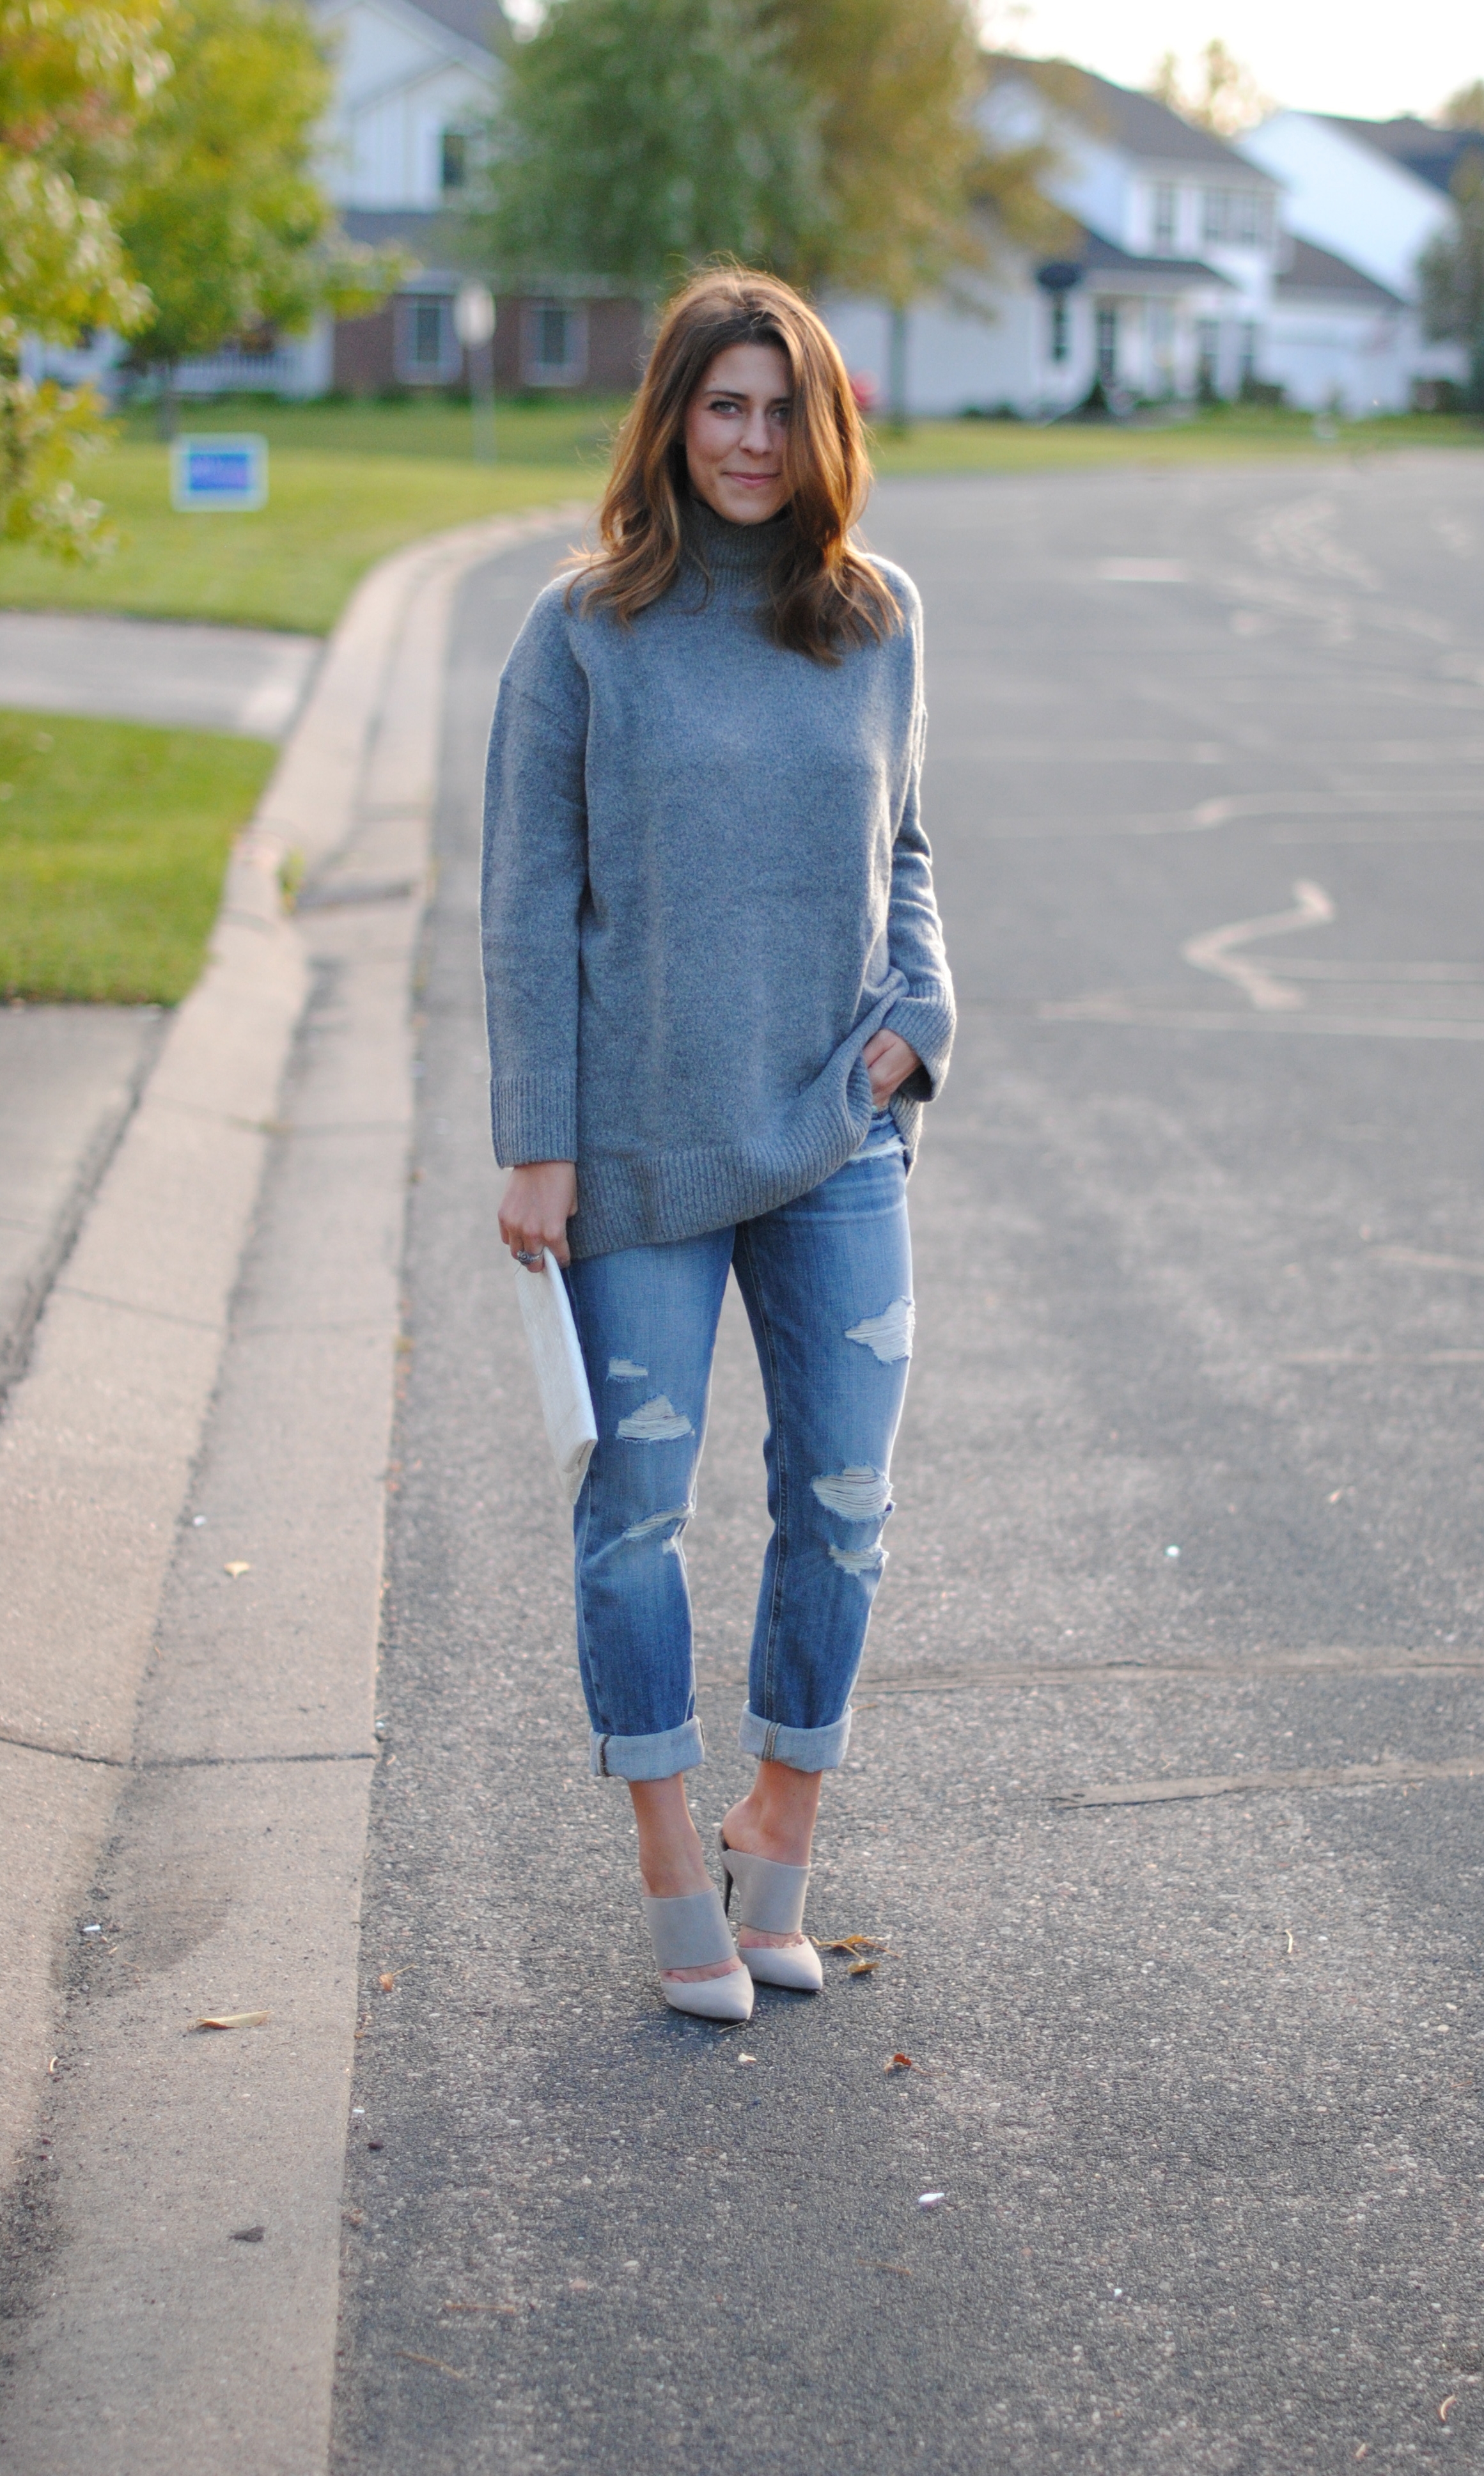 Oversized sweater (I would highly suggest ordering a small as this piece is already very oversized)   Boyfriend jeans    Suede mules